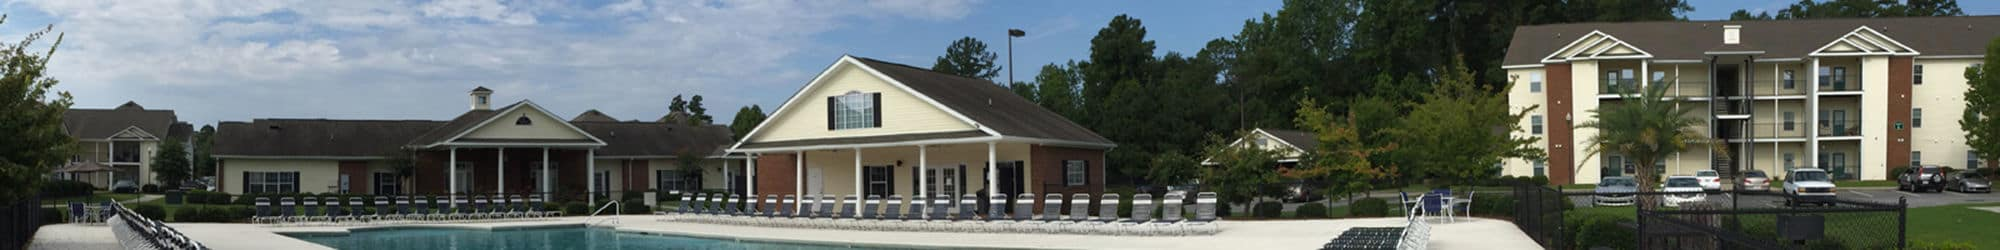 Request information about Northwind Apartments, our apartments in Valdosta